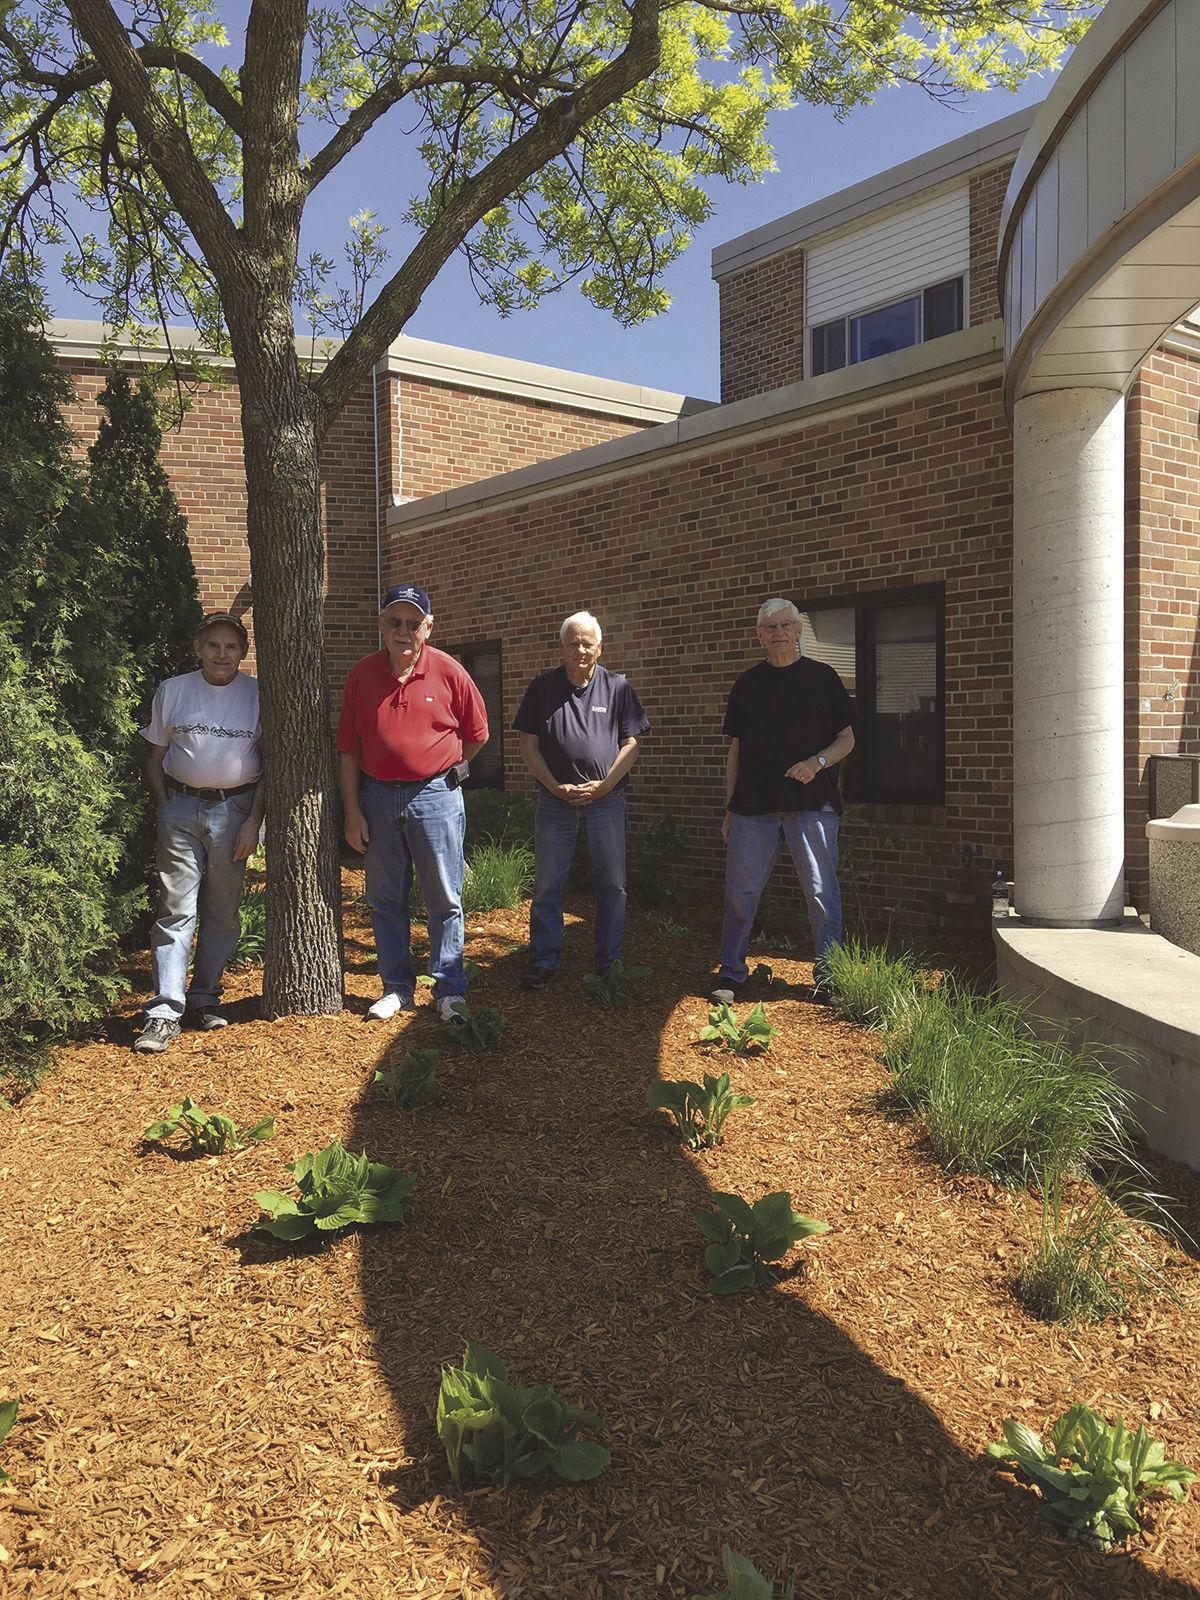 First Retired Men's Shed Group in continental U.S. thrives in Hopkins